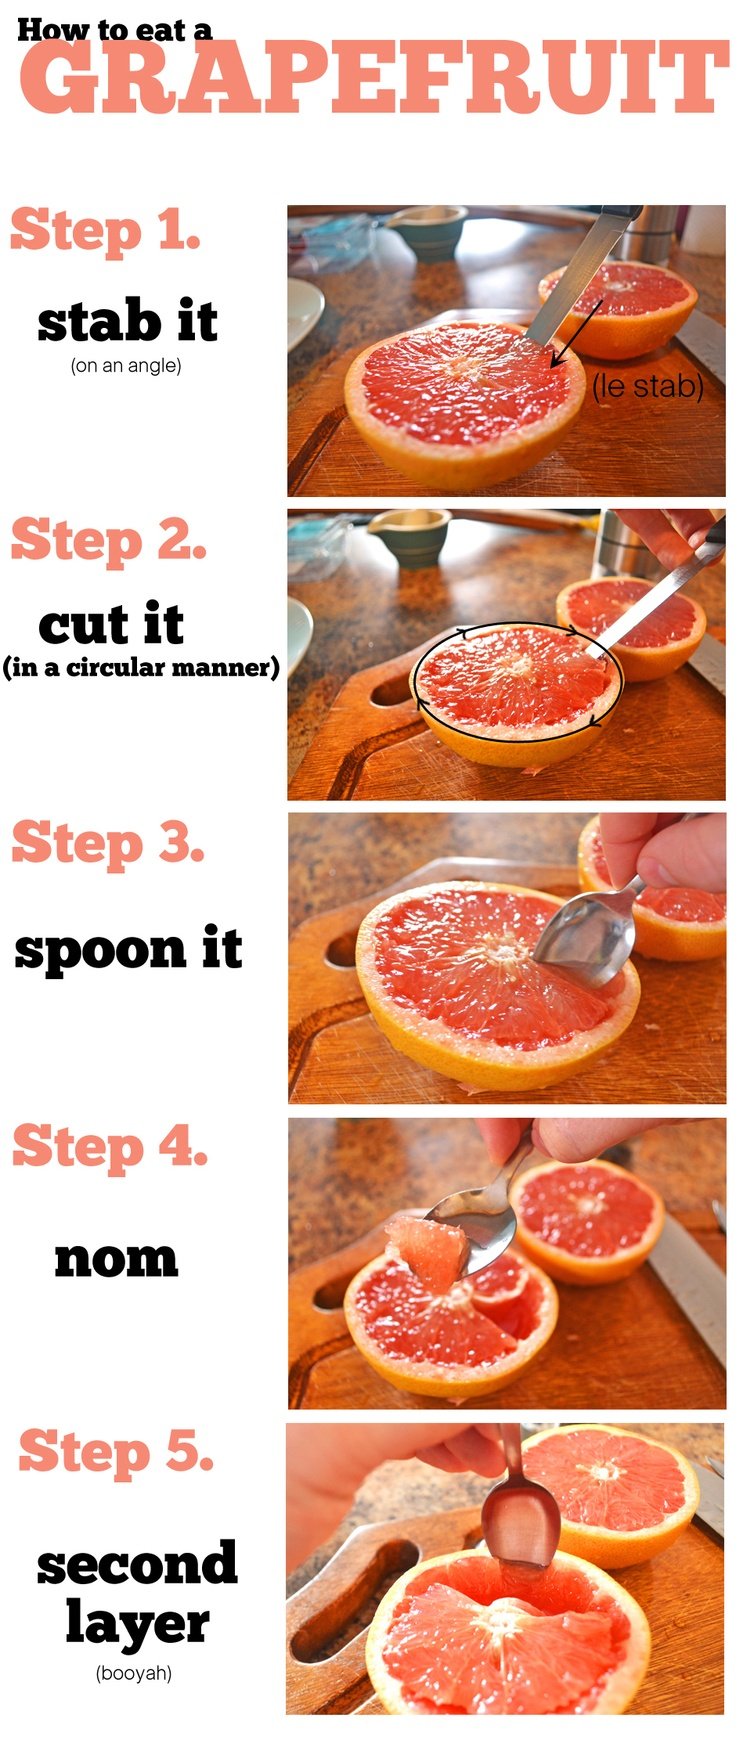 Apparently Denise doesn't like getting sprayed at lunch lol!! How to eat a grapefruit - for dummies